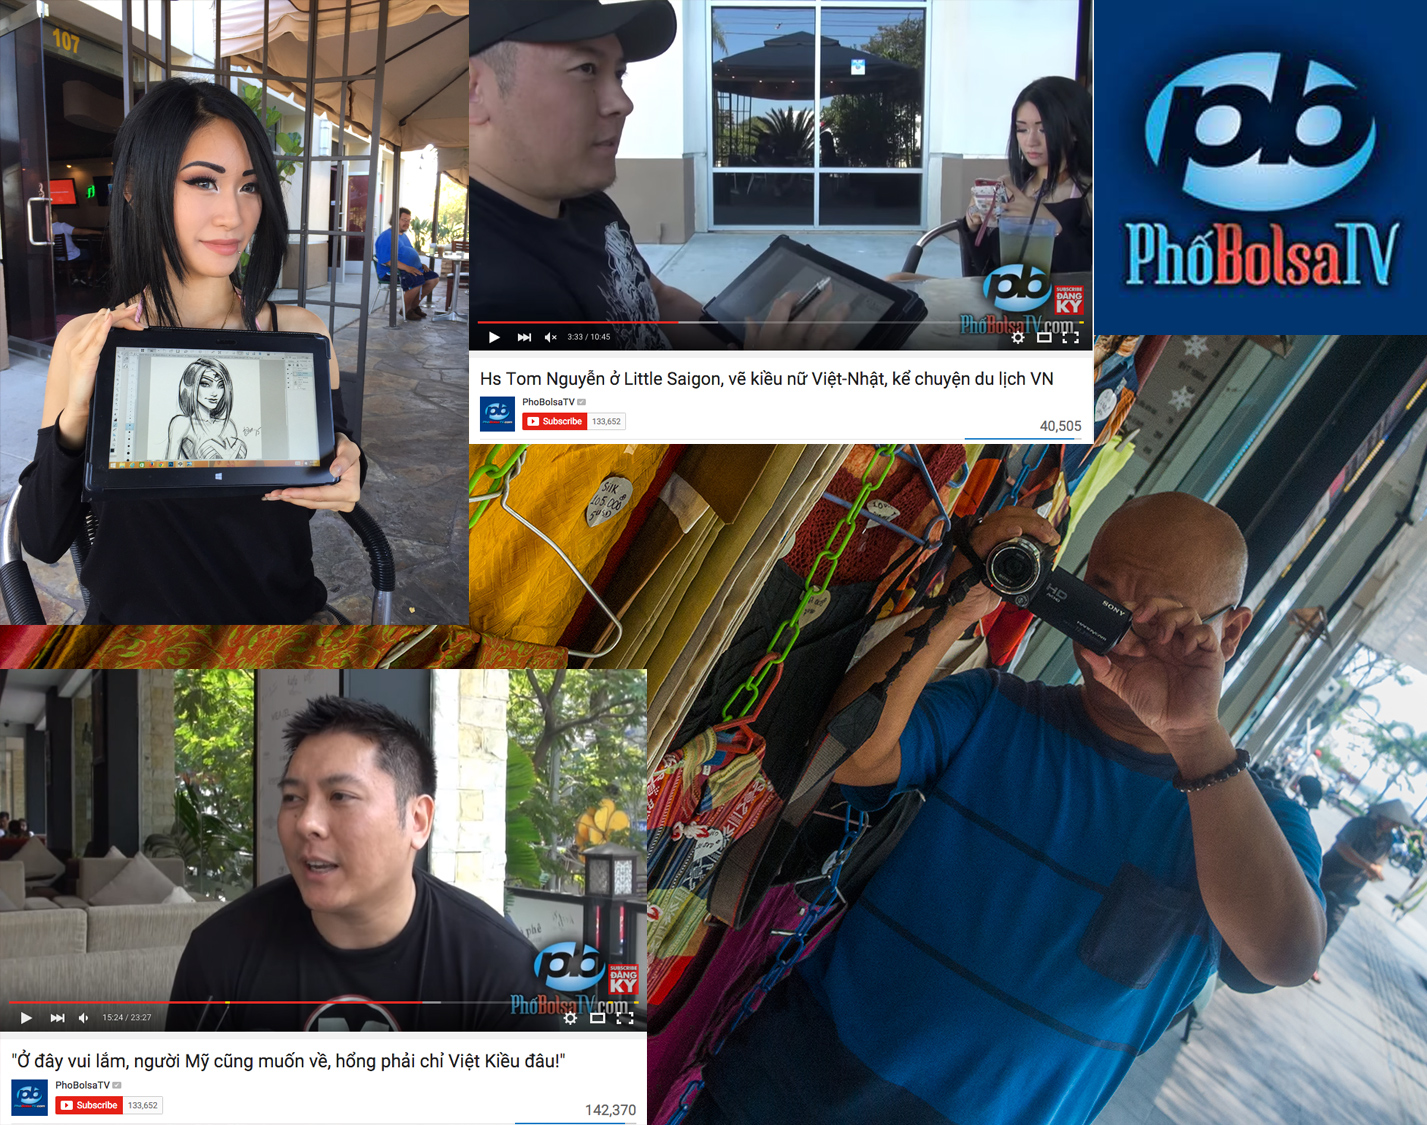 I was fortunate enough to meet  Mr. Lan Vu  of the Vietnamese famous   PhoBolsa TV   channel, and was interviewed twice by him--once in Saigon, Vietnam, and once in Orange County, CA.